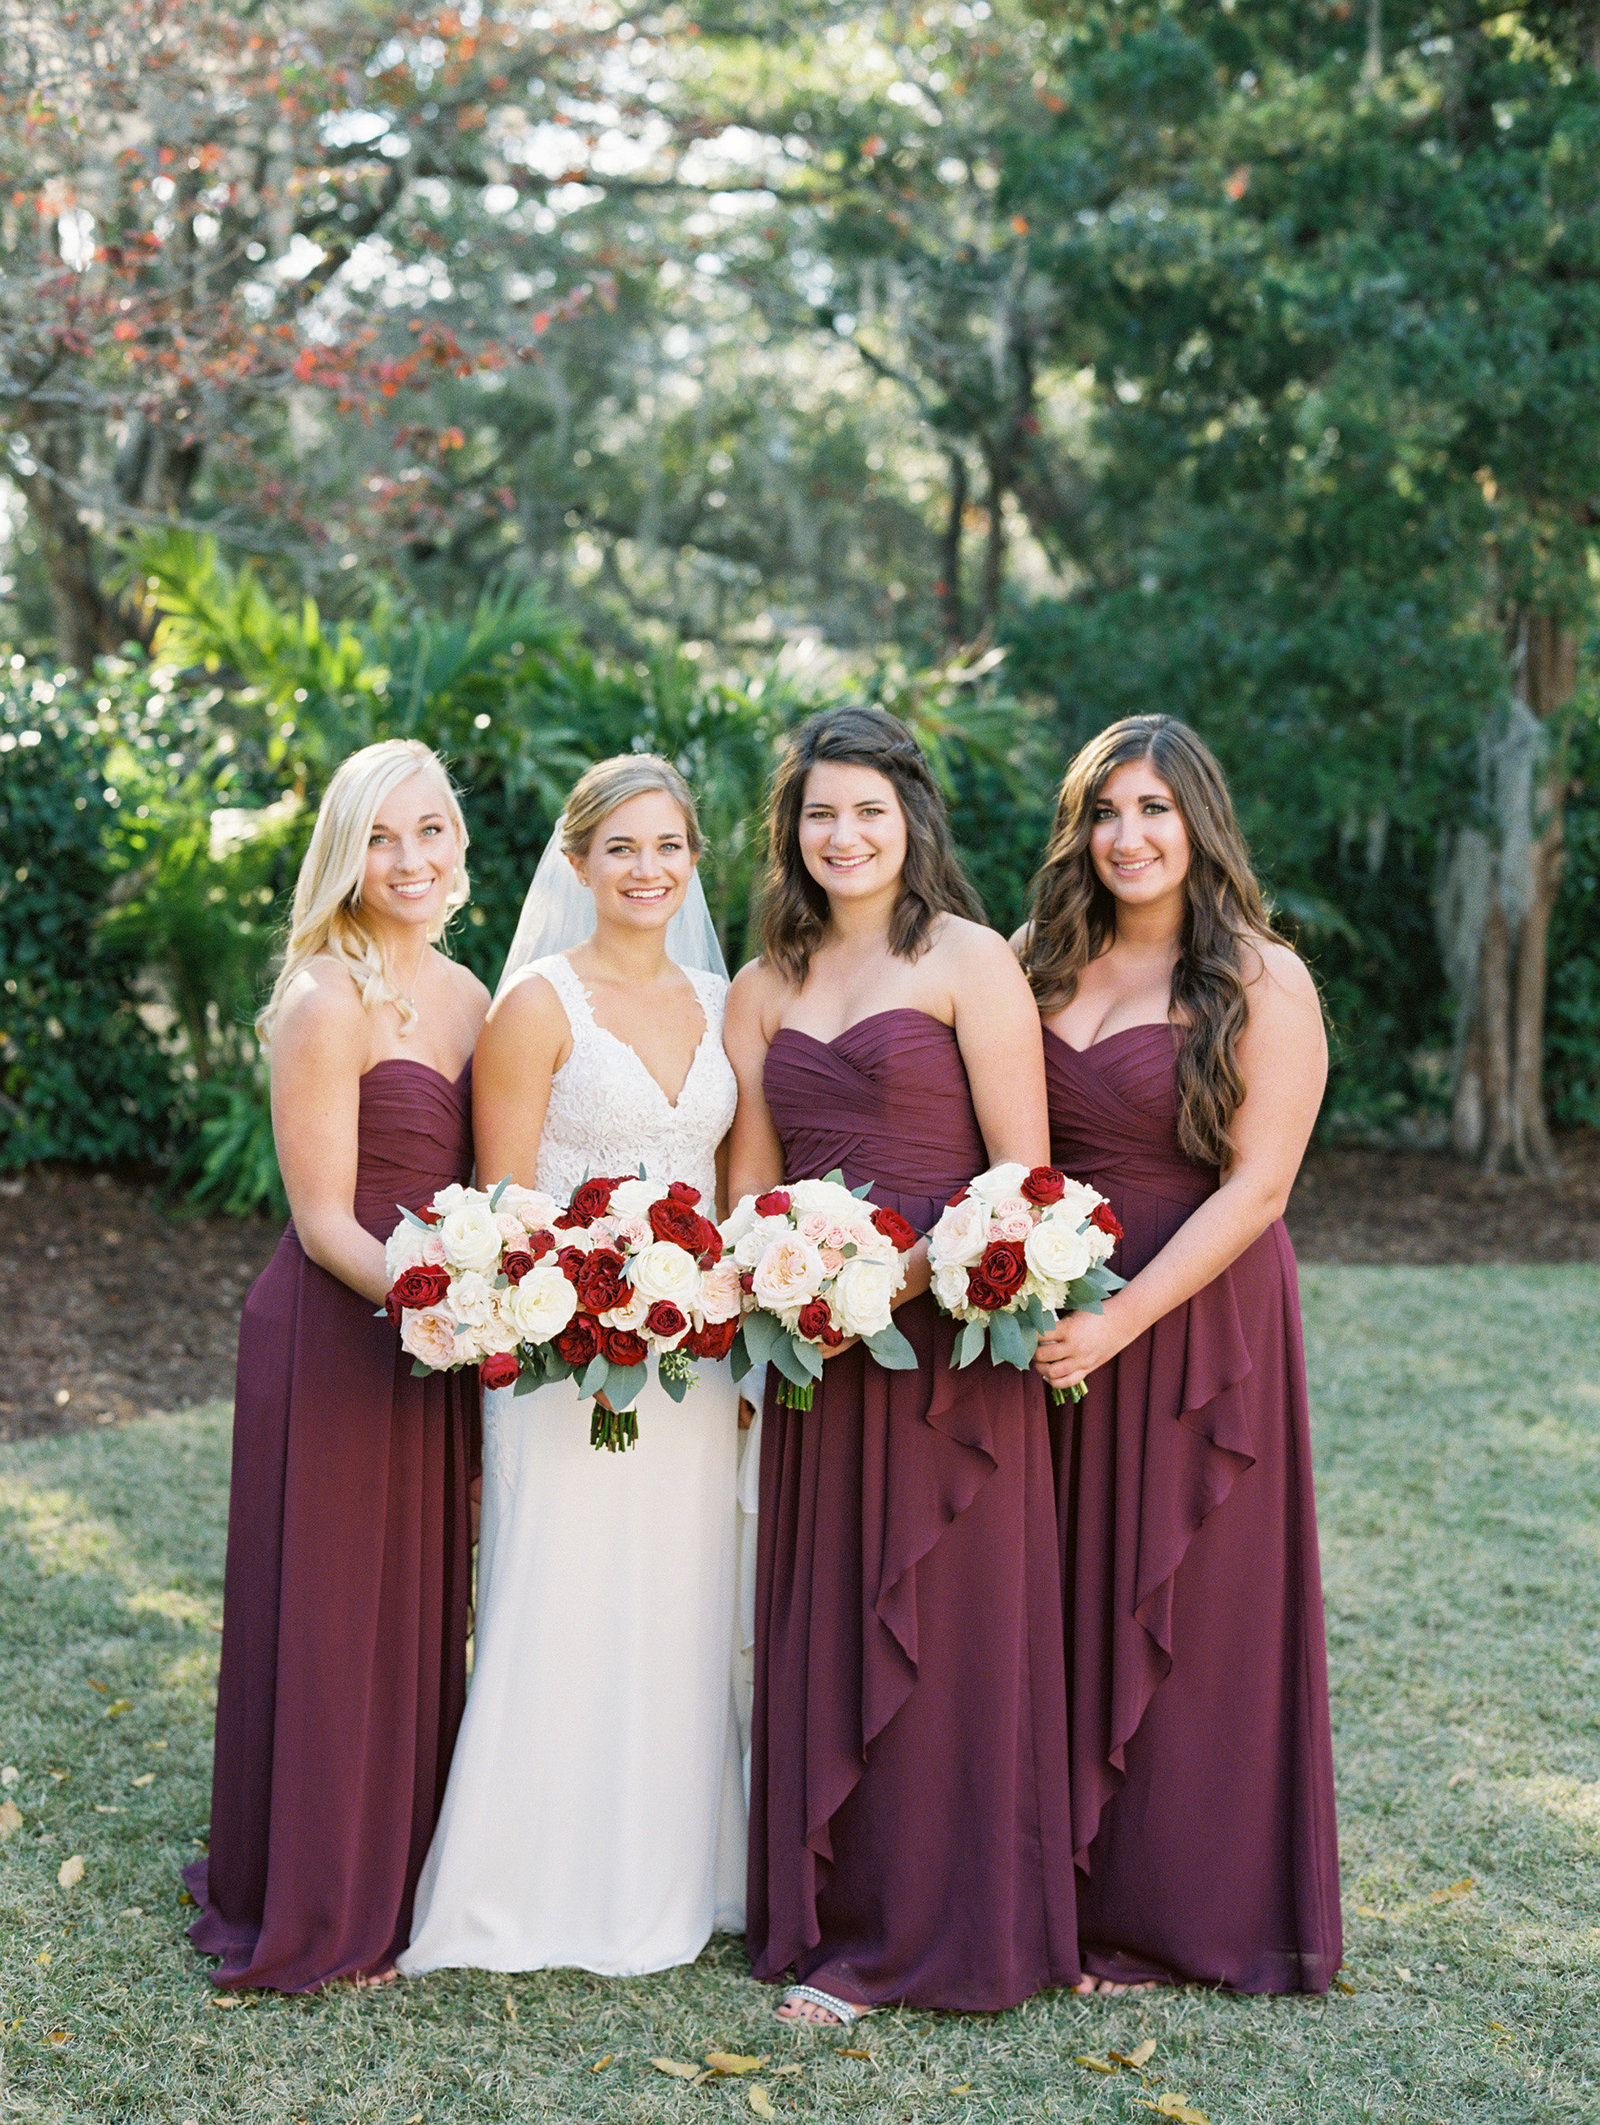 20171216-Pura-Soul-Photo-Wrightsville-Manor-Cortale-Wedding-film-4